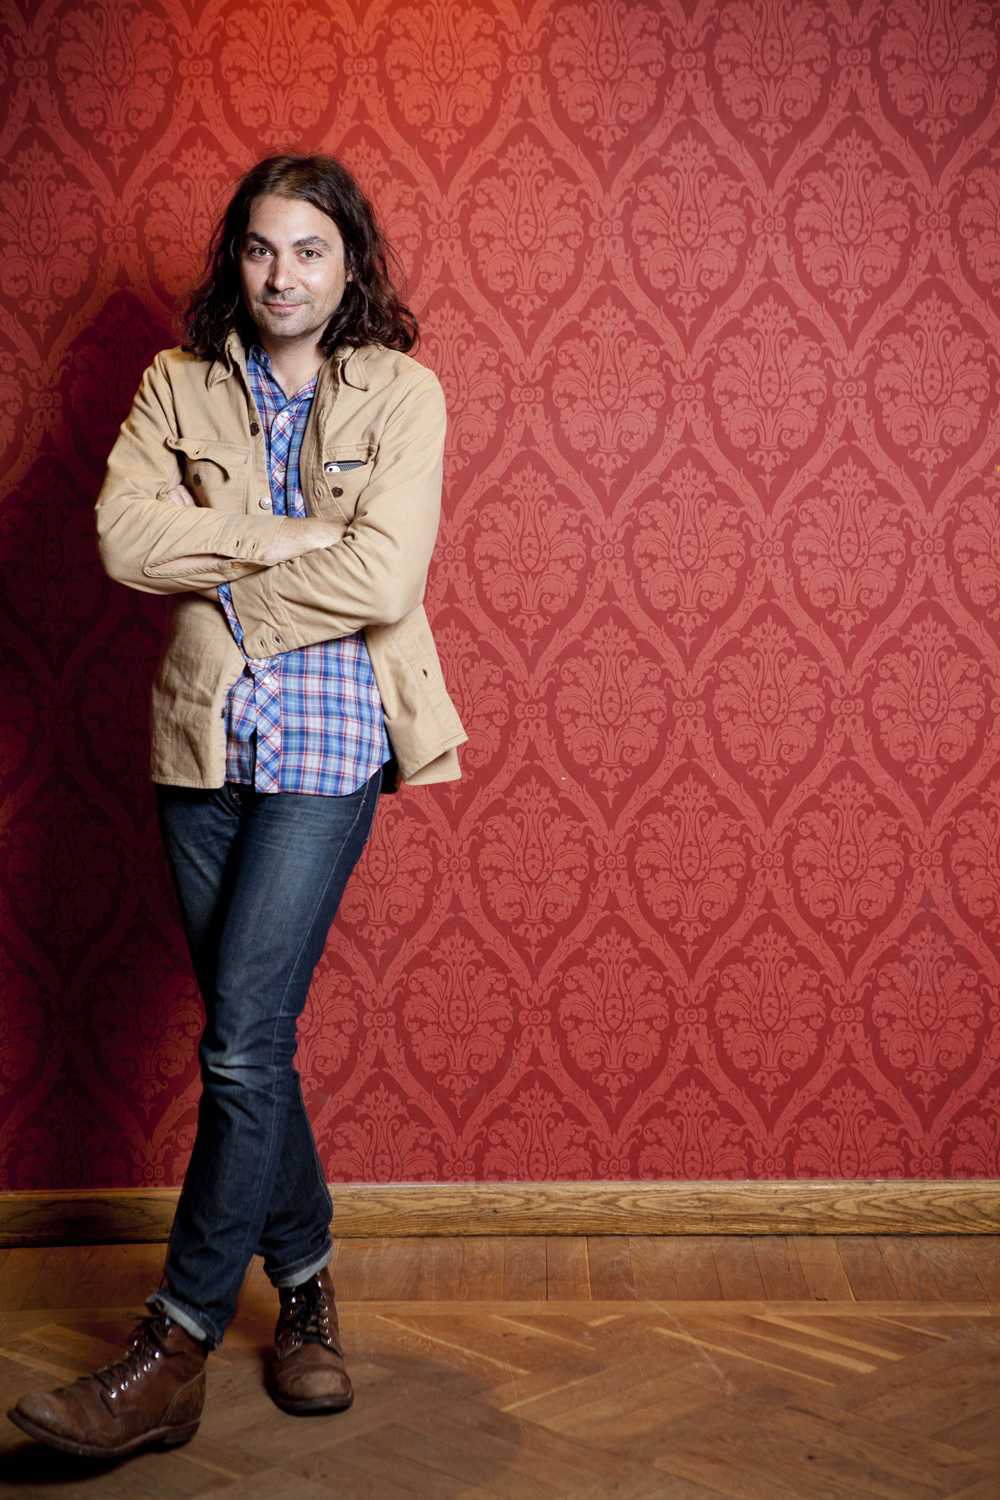 Adam Granduciel/The War on Drugs (Sonic magazine)